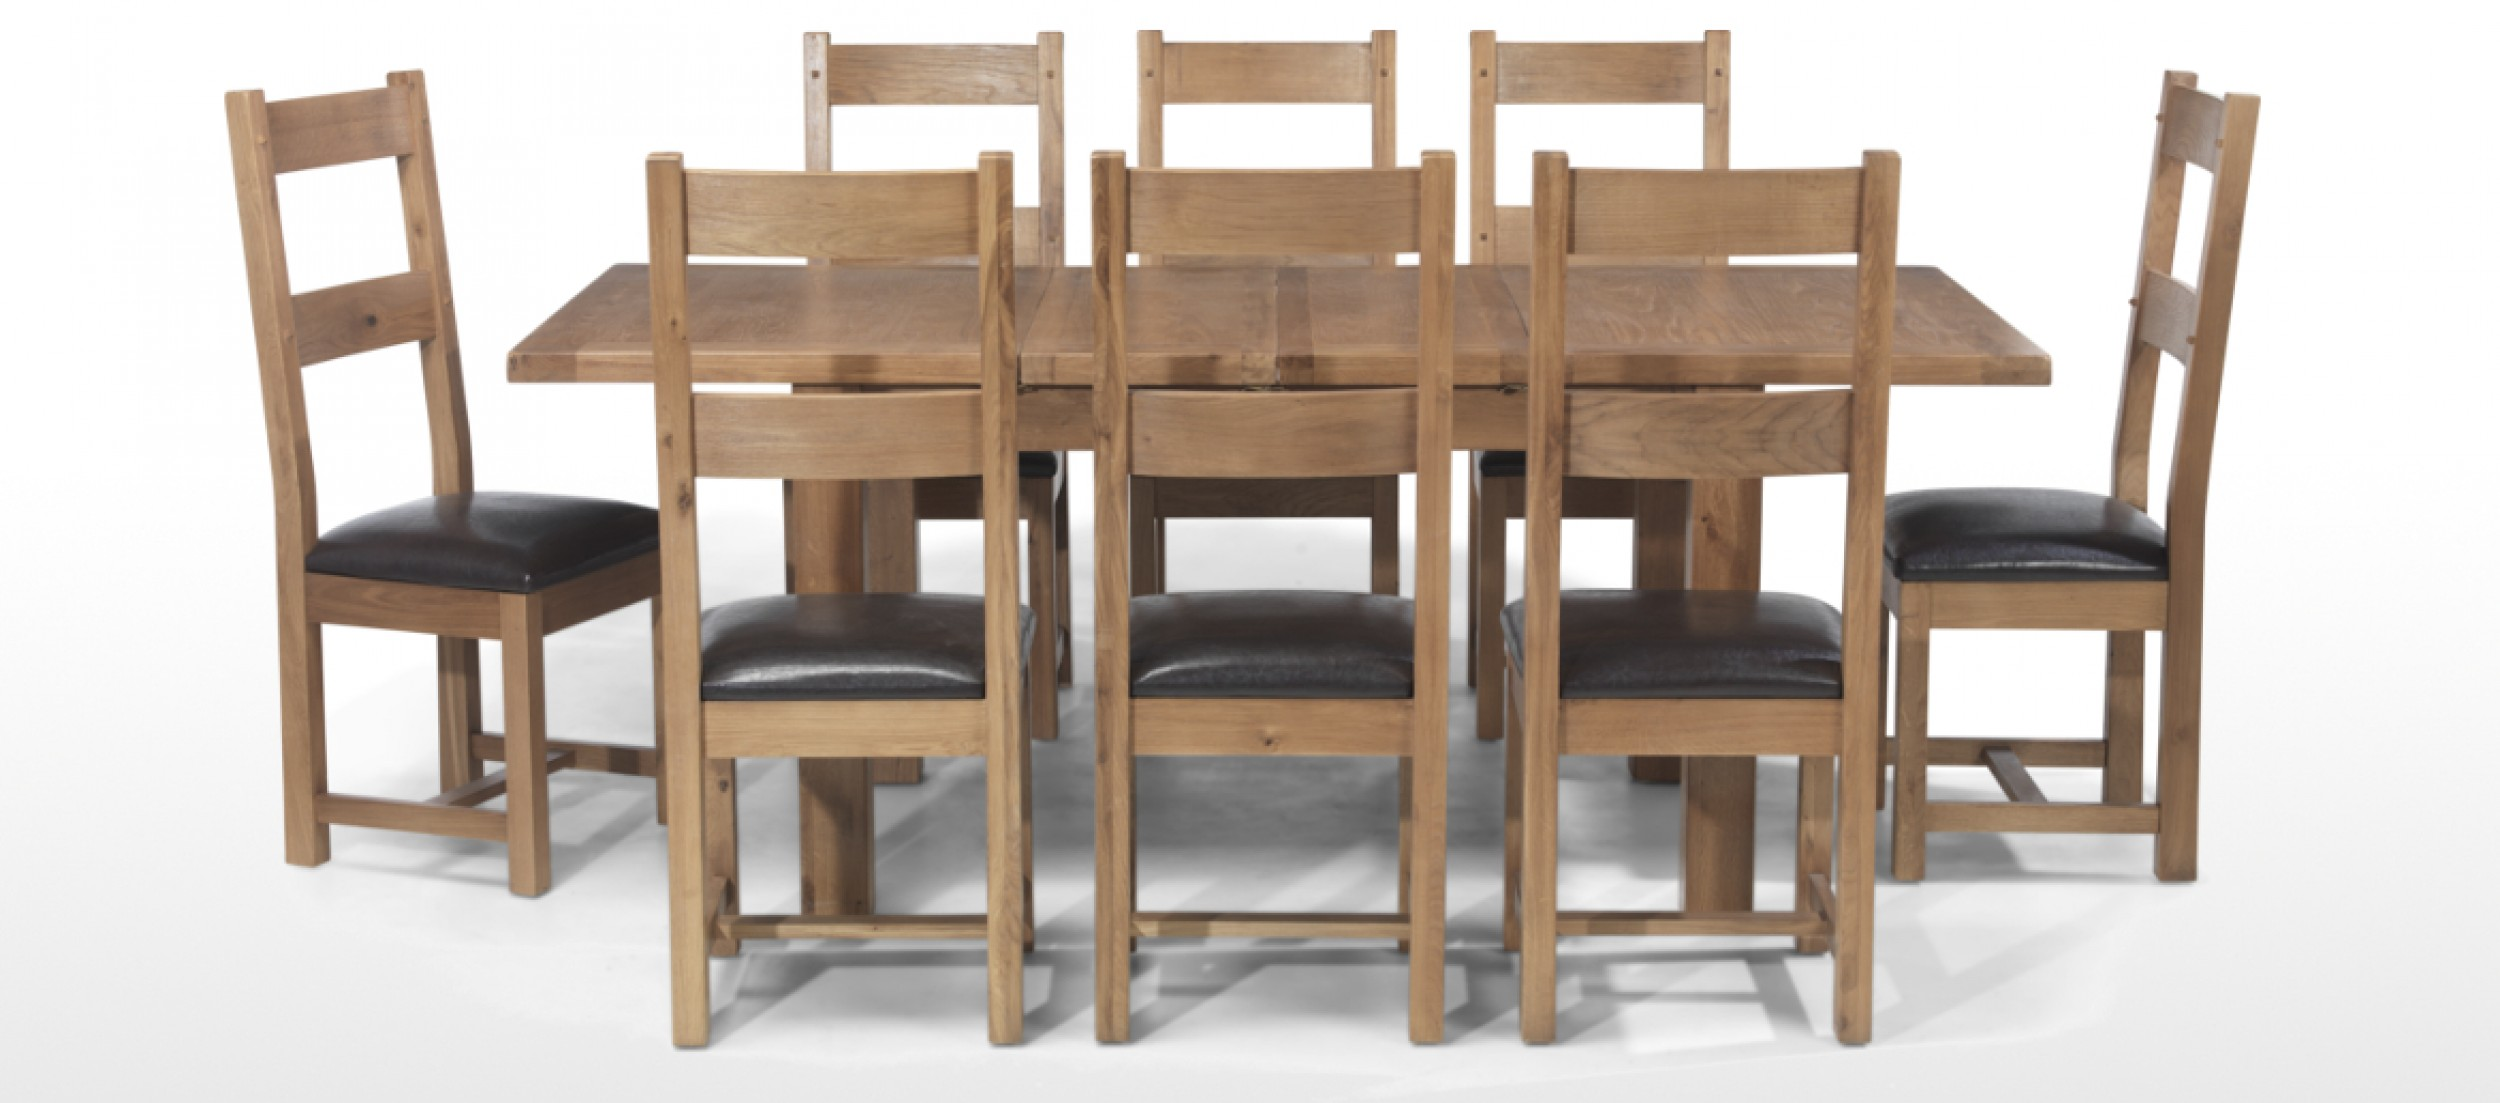 Breakfast Table Chairs Rustic Oak 132 198 Cm Extending Dining Table And 8 Chairs